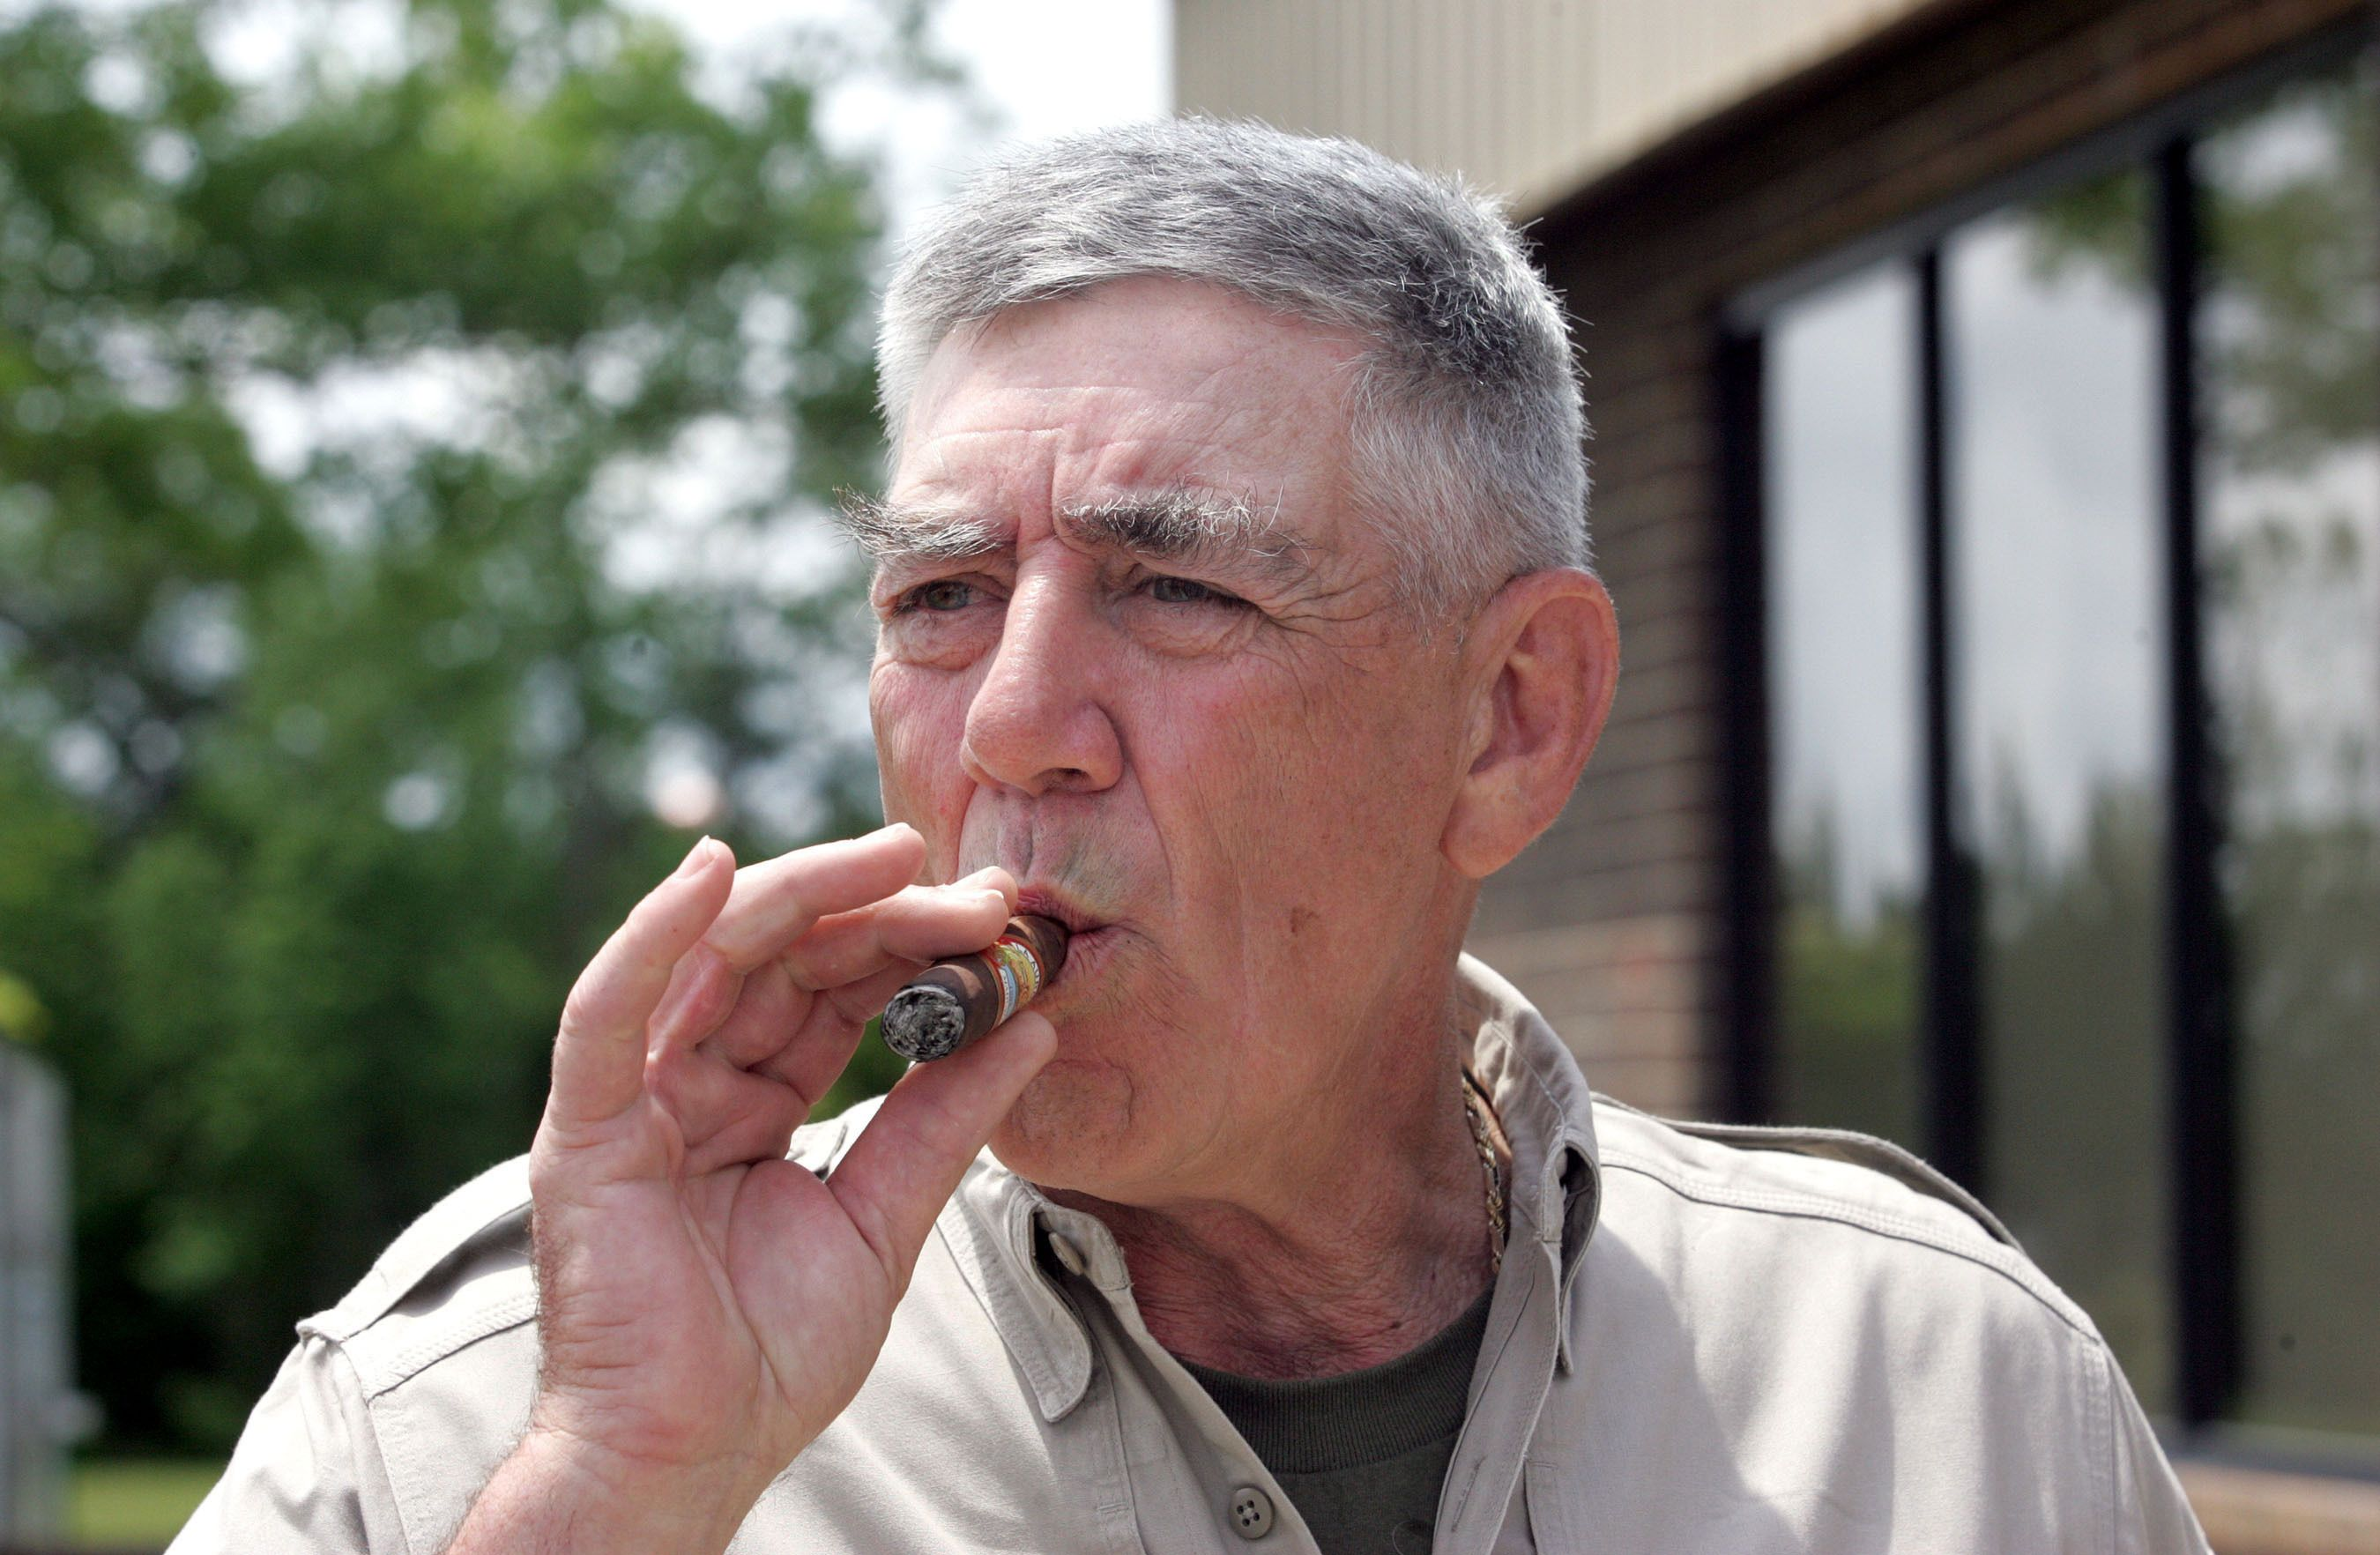 R Lee Ermey The Insult Hurling Drill Instructor From Full